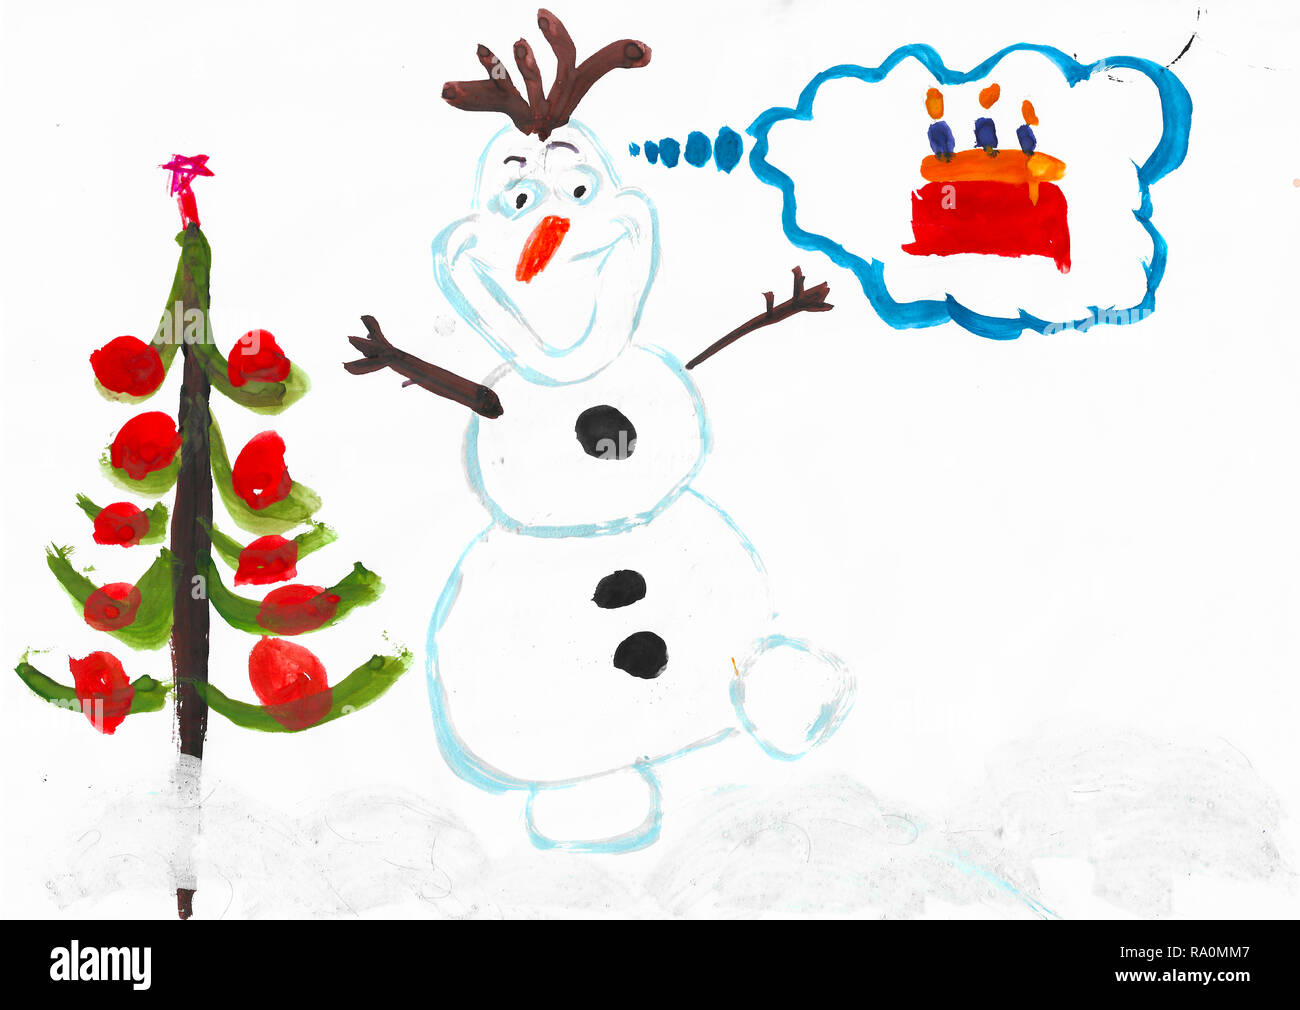 Sketch Christmas Tree High Resolution Stock Photography And Images Alamy